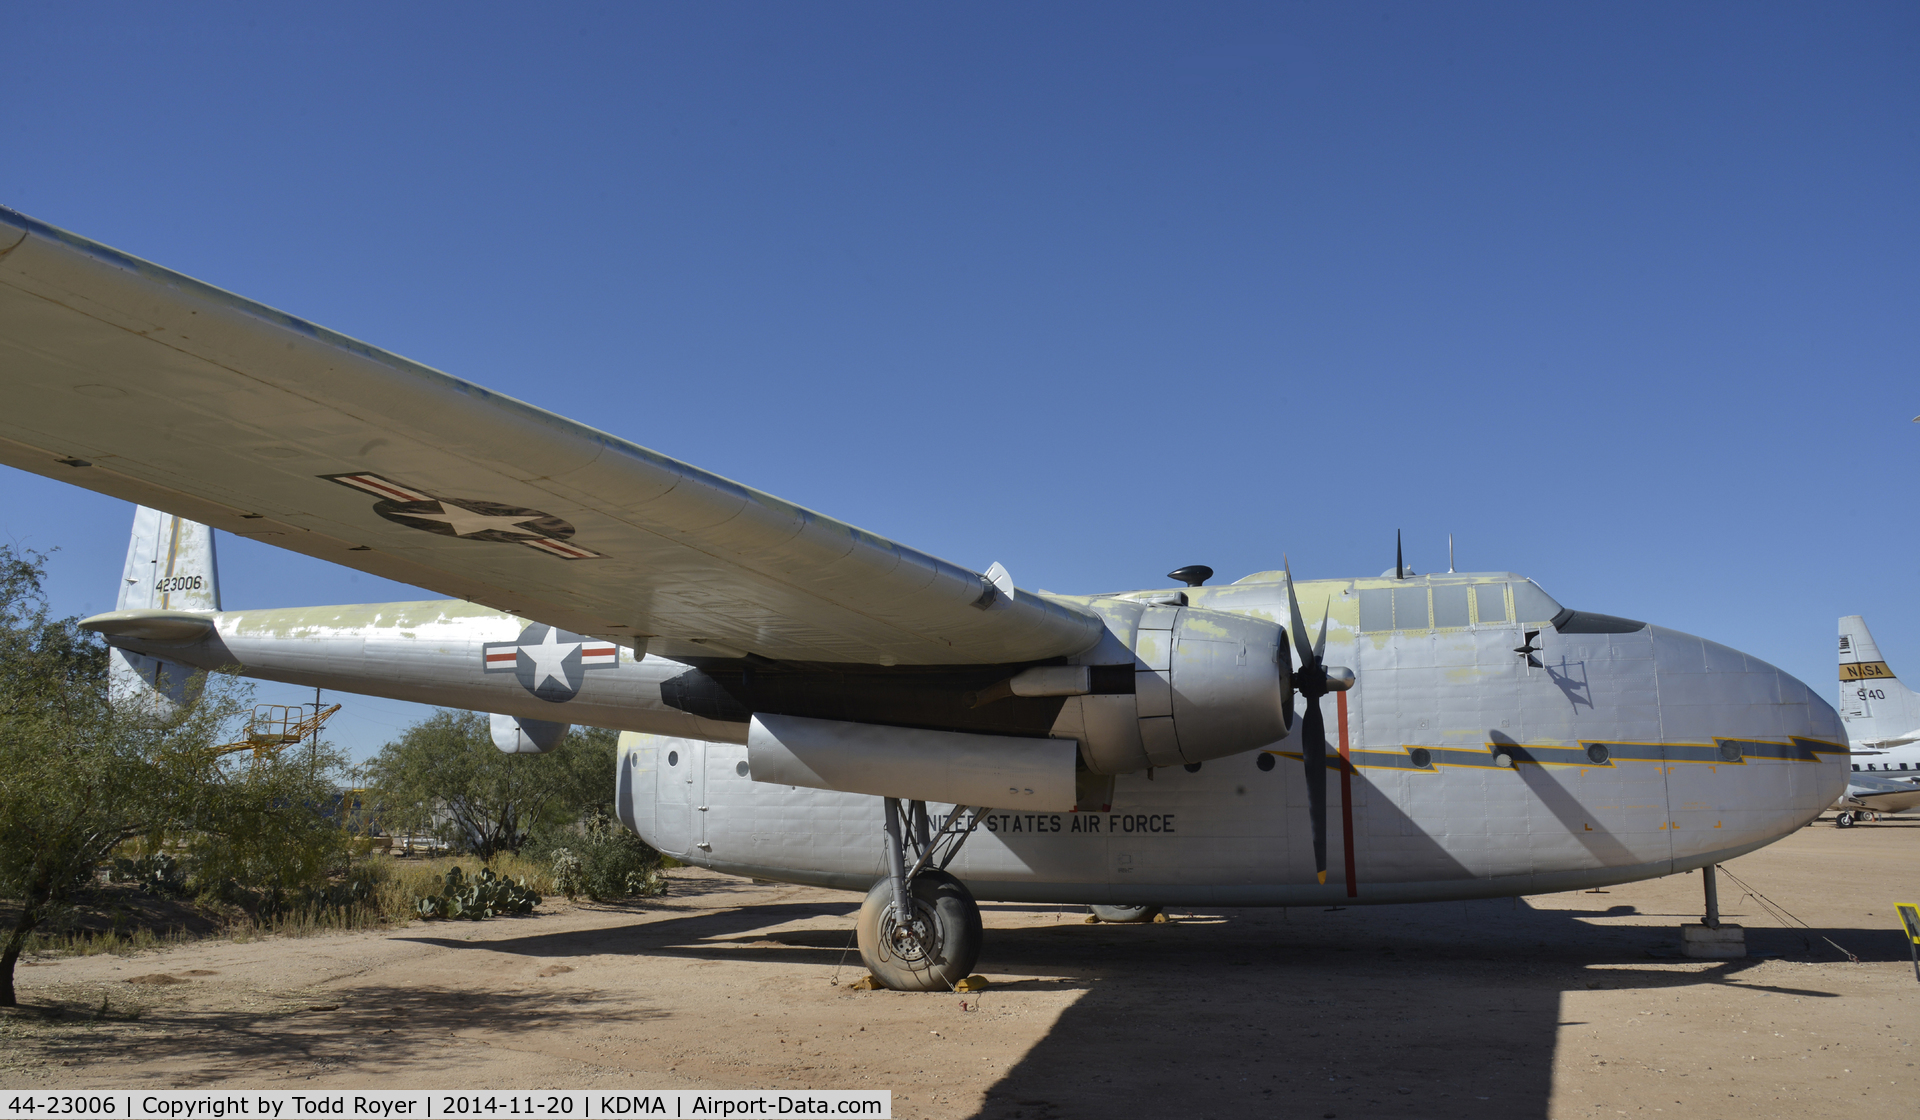 44-23006, 1944 Fairchild C-82A-15-FA Packet C/N 10050, On display at the Pima Air and Space Museum